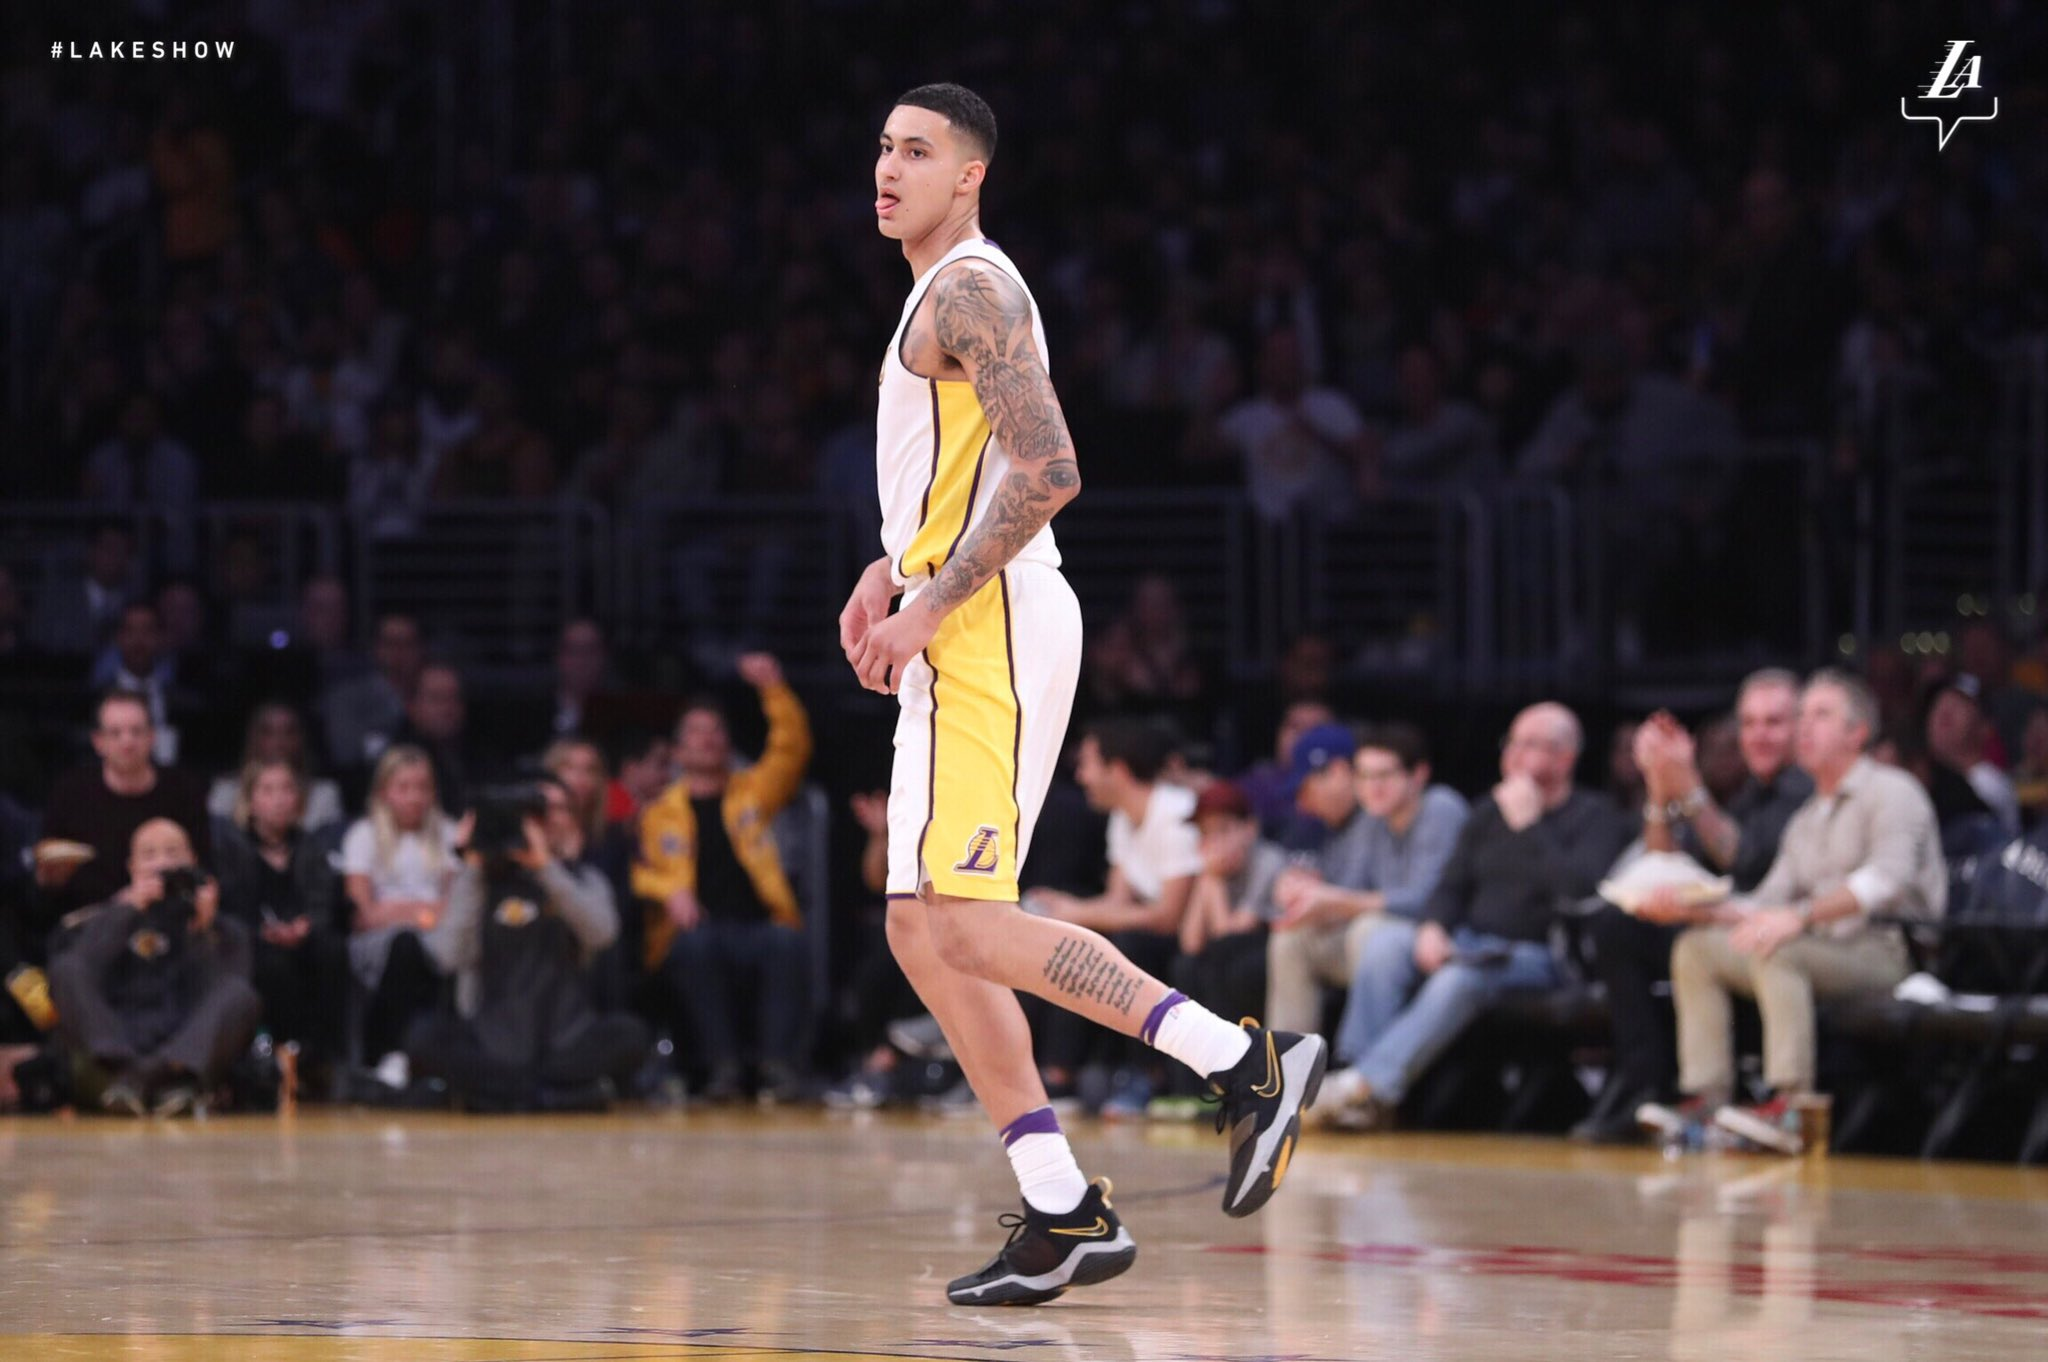 Give him 10pts on the day #KuzControl https://t.co/cfUKnKiHhk